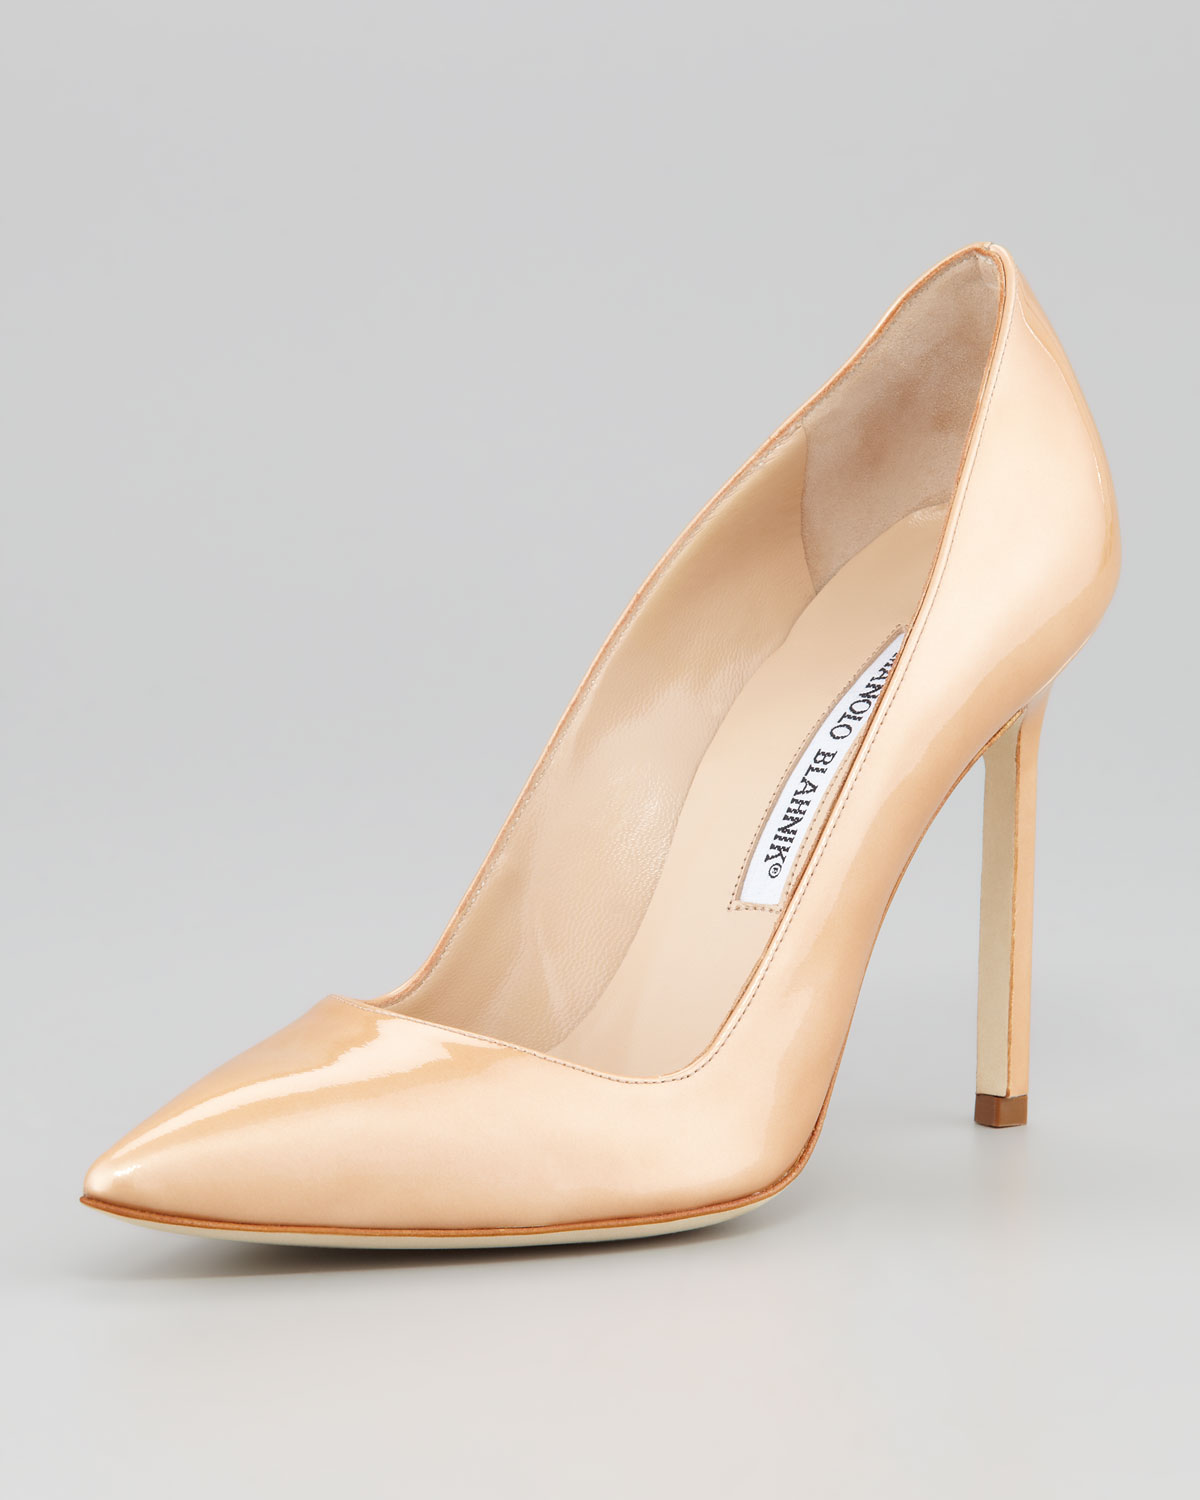 09dddd2ce41d Lyst - Manolo Blahnik Bb Pearly Patent Pump in Natural